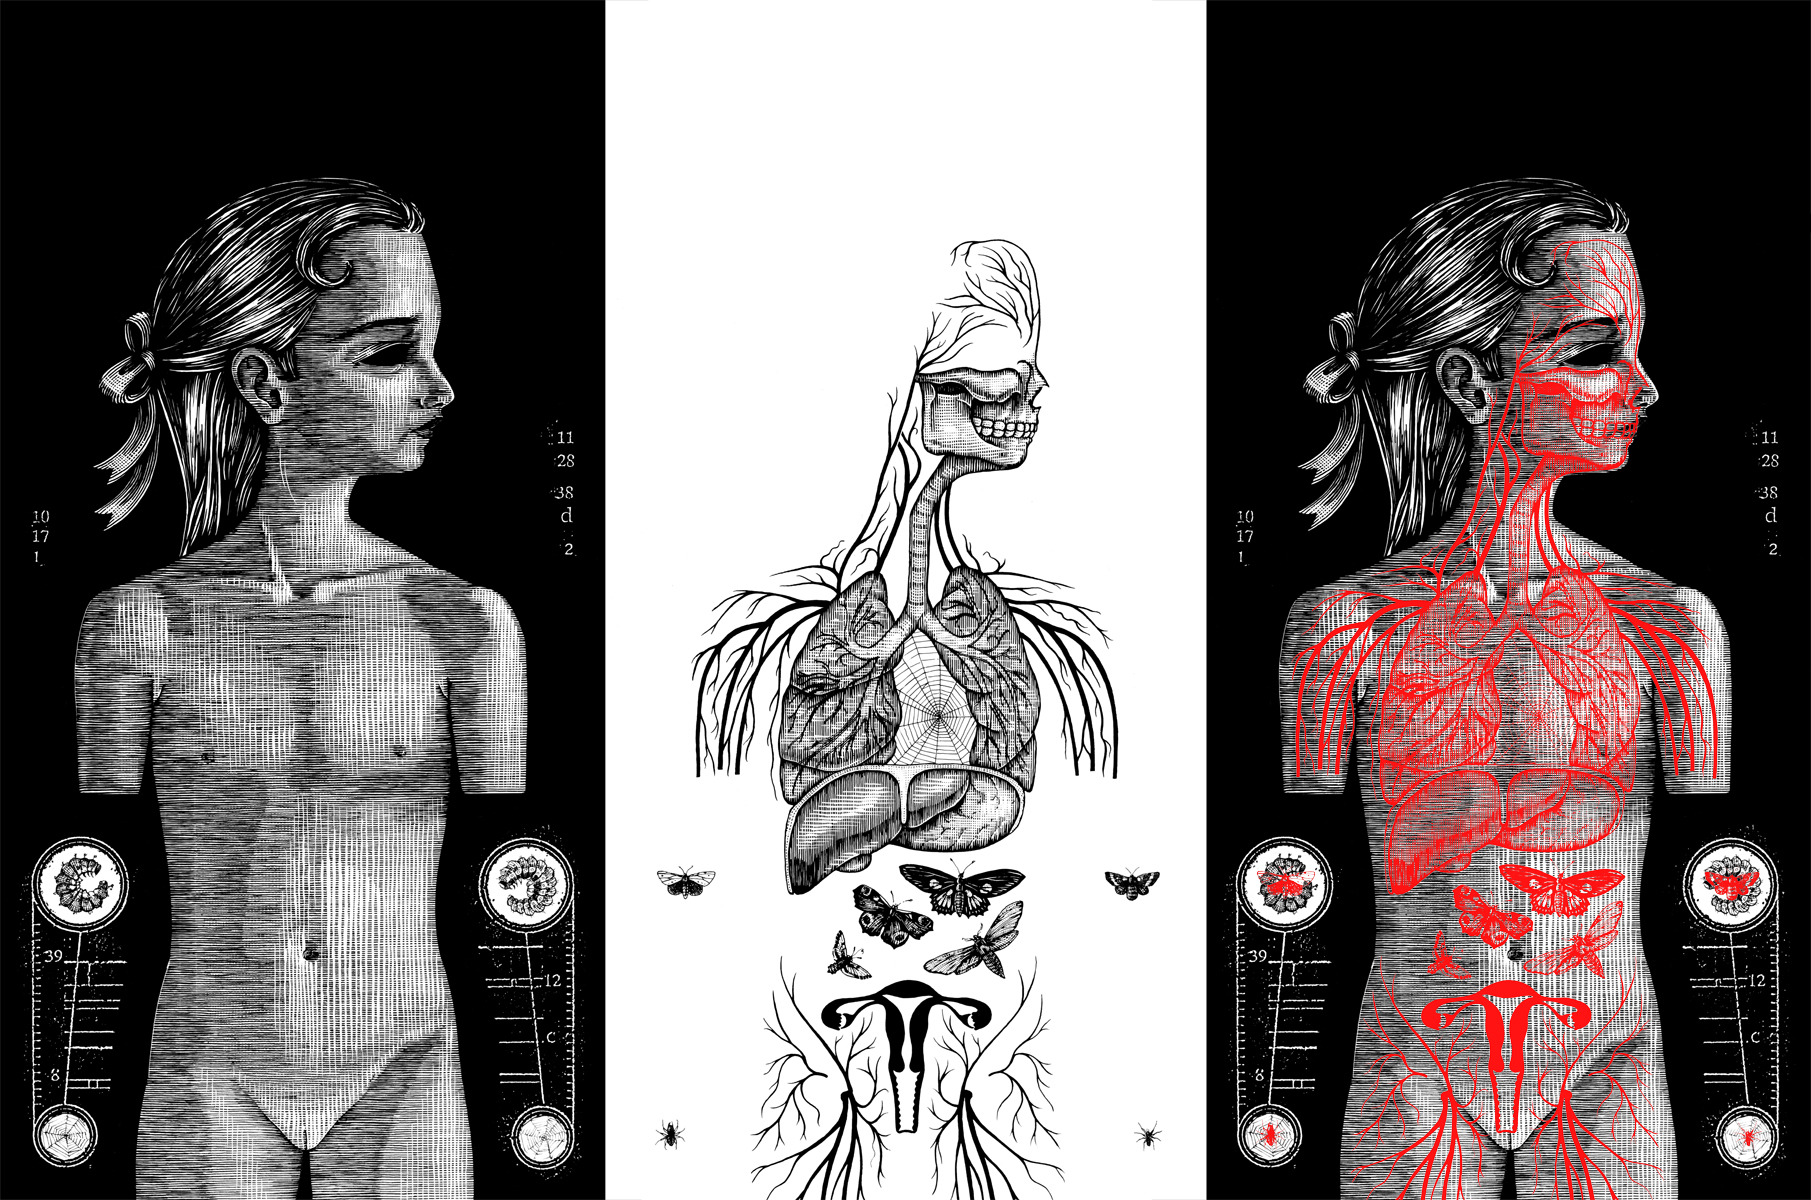 Oneiroid Psychosis,  Fantasies About Illness.  Inside booklet.  1996. Pen and ink, Scratch board. Left- Base drawing. Middle- Overlay drawing. Right- Composite: overlay drawing printed in red on Mylar film. Released by Decibel Records.